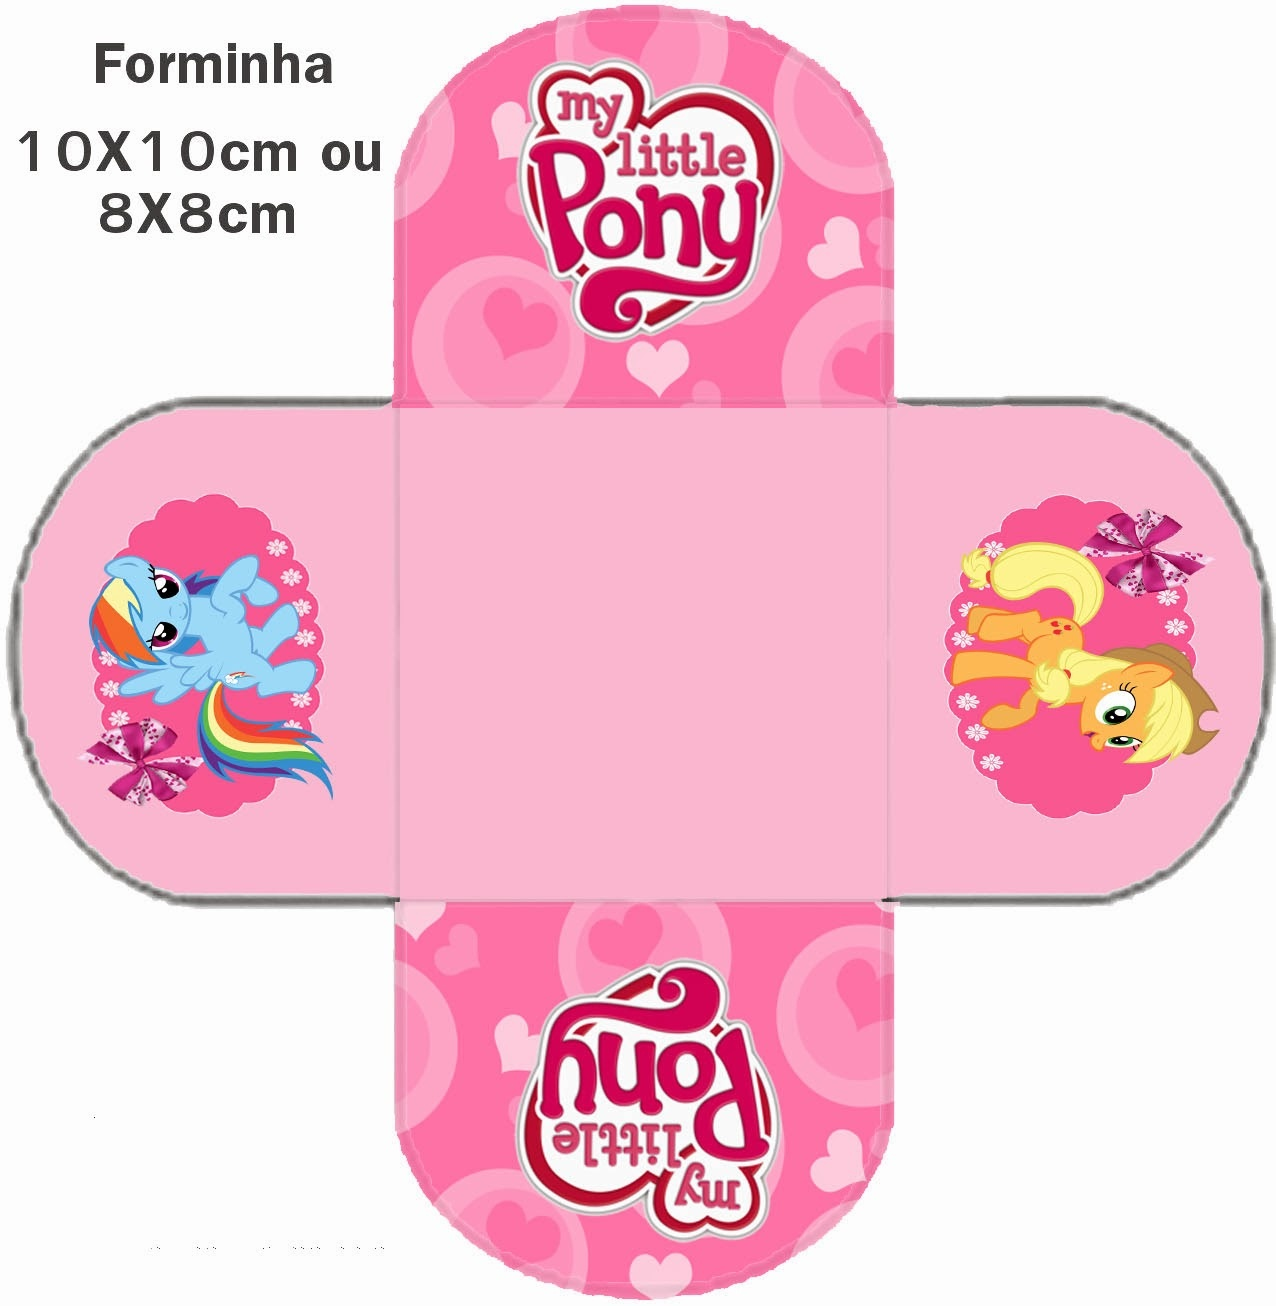 My Little Pony In Pink Free Printable Kit. - Oh My Fiesta! For Geeks - My Little Pony Free Printables